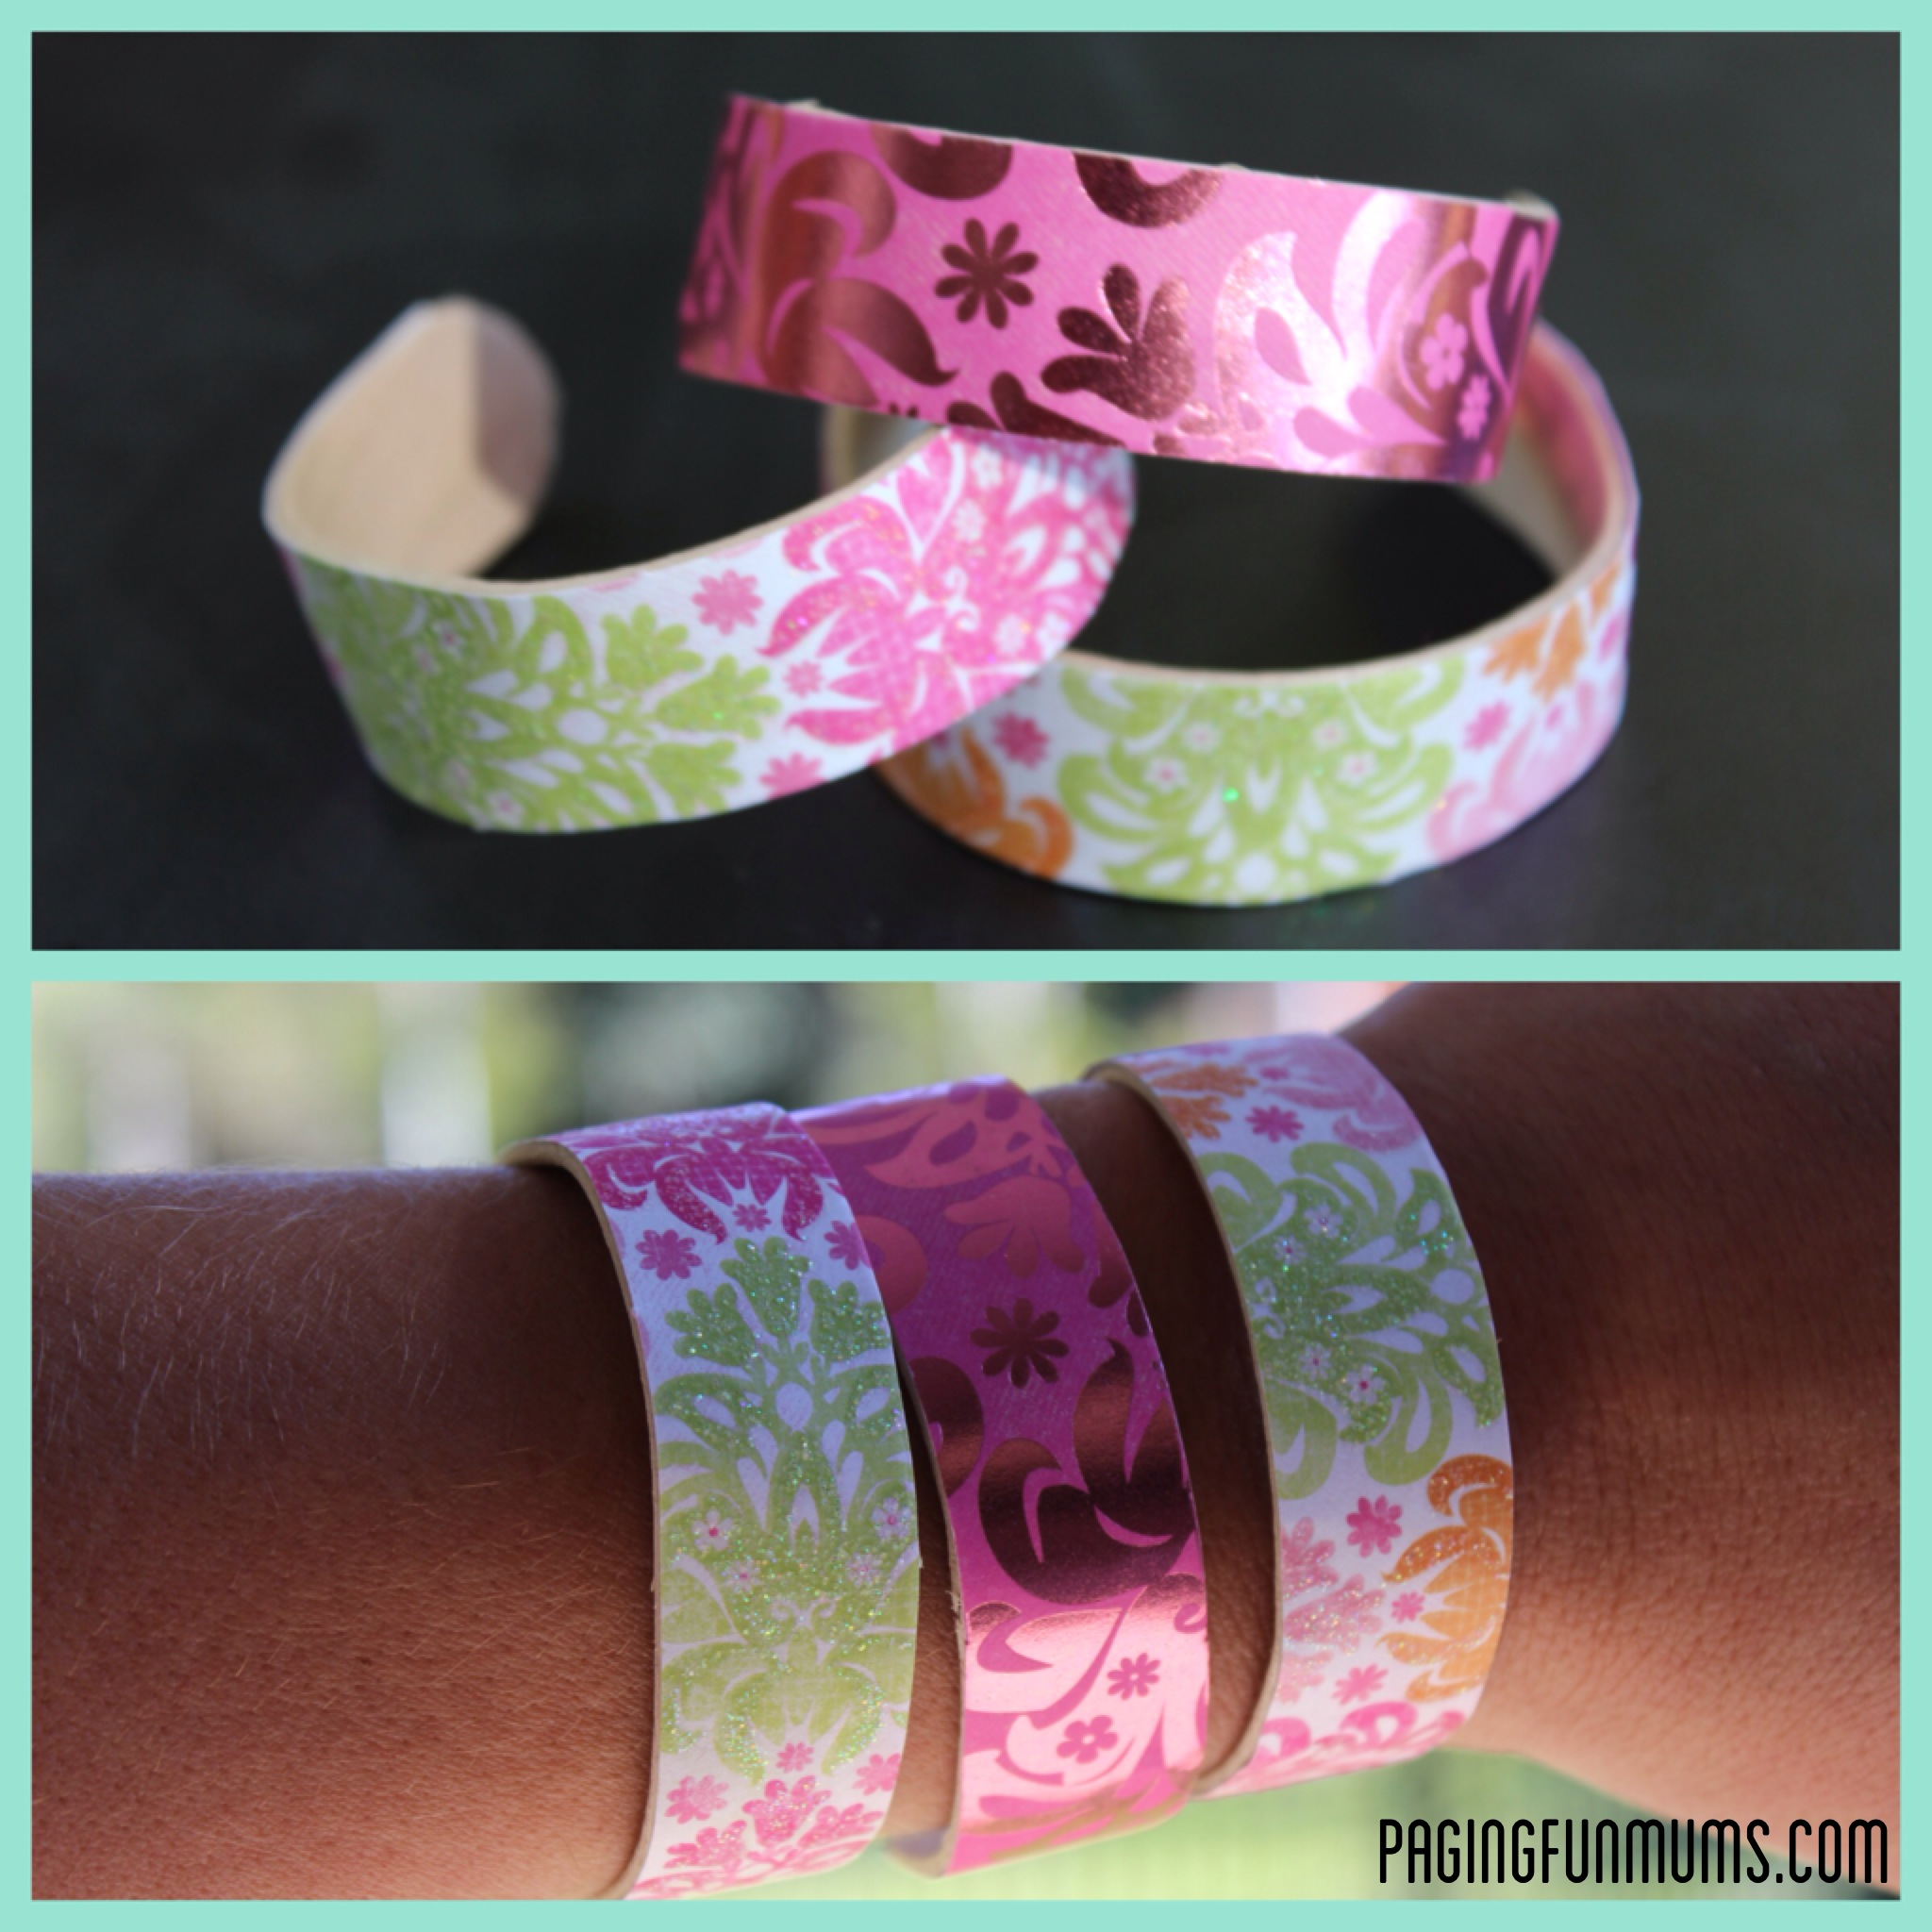 DIY – Wooden Popsicle Stick bangles! (Louise)